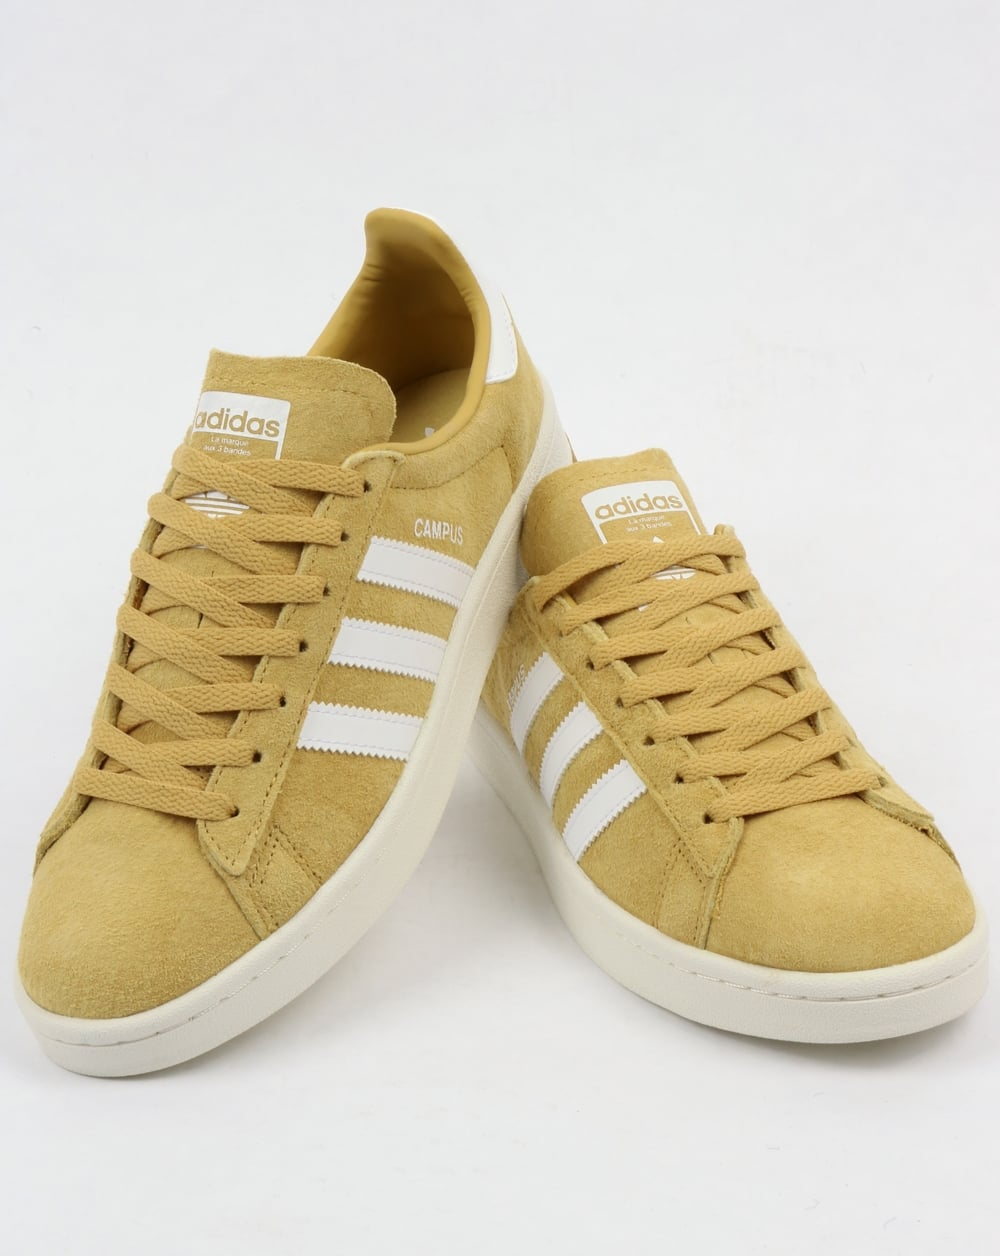 Adidas Campus Trainers Yellow White b98cbe2d4a22